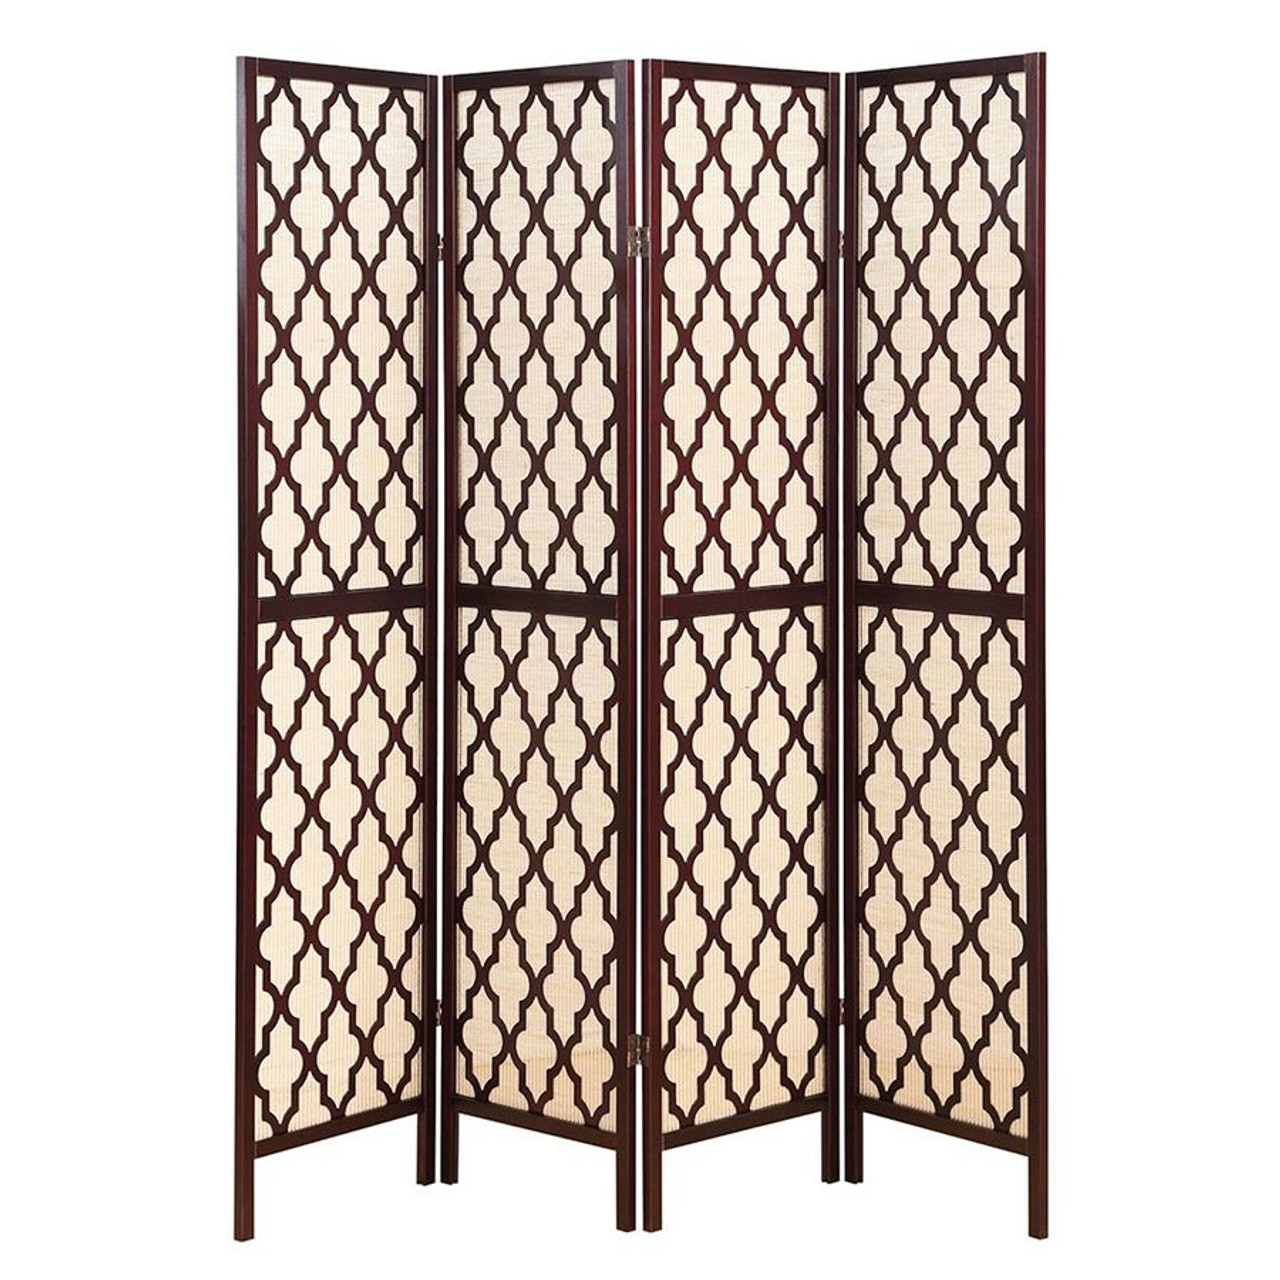 Room Divider 4 Panel Wooden Fabric In-lay  Decorative Cut Outs  Espresso Color